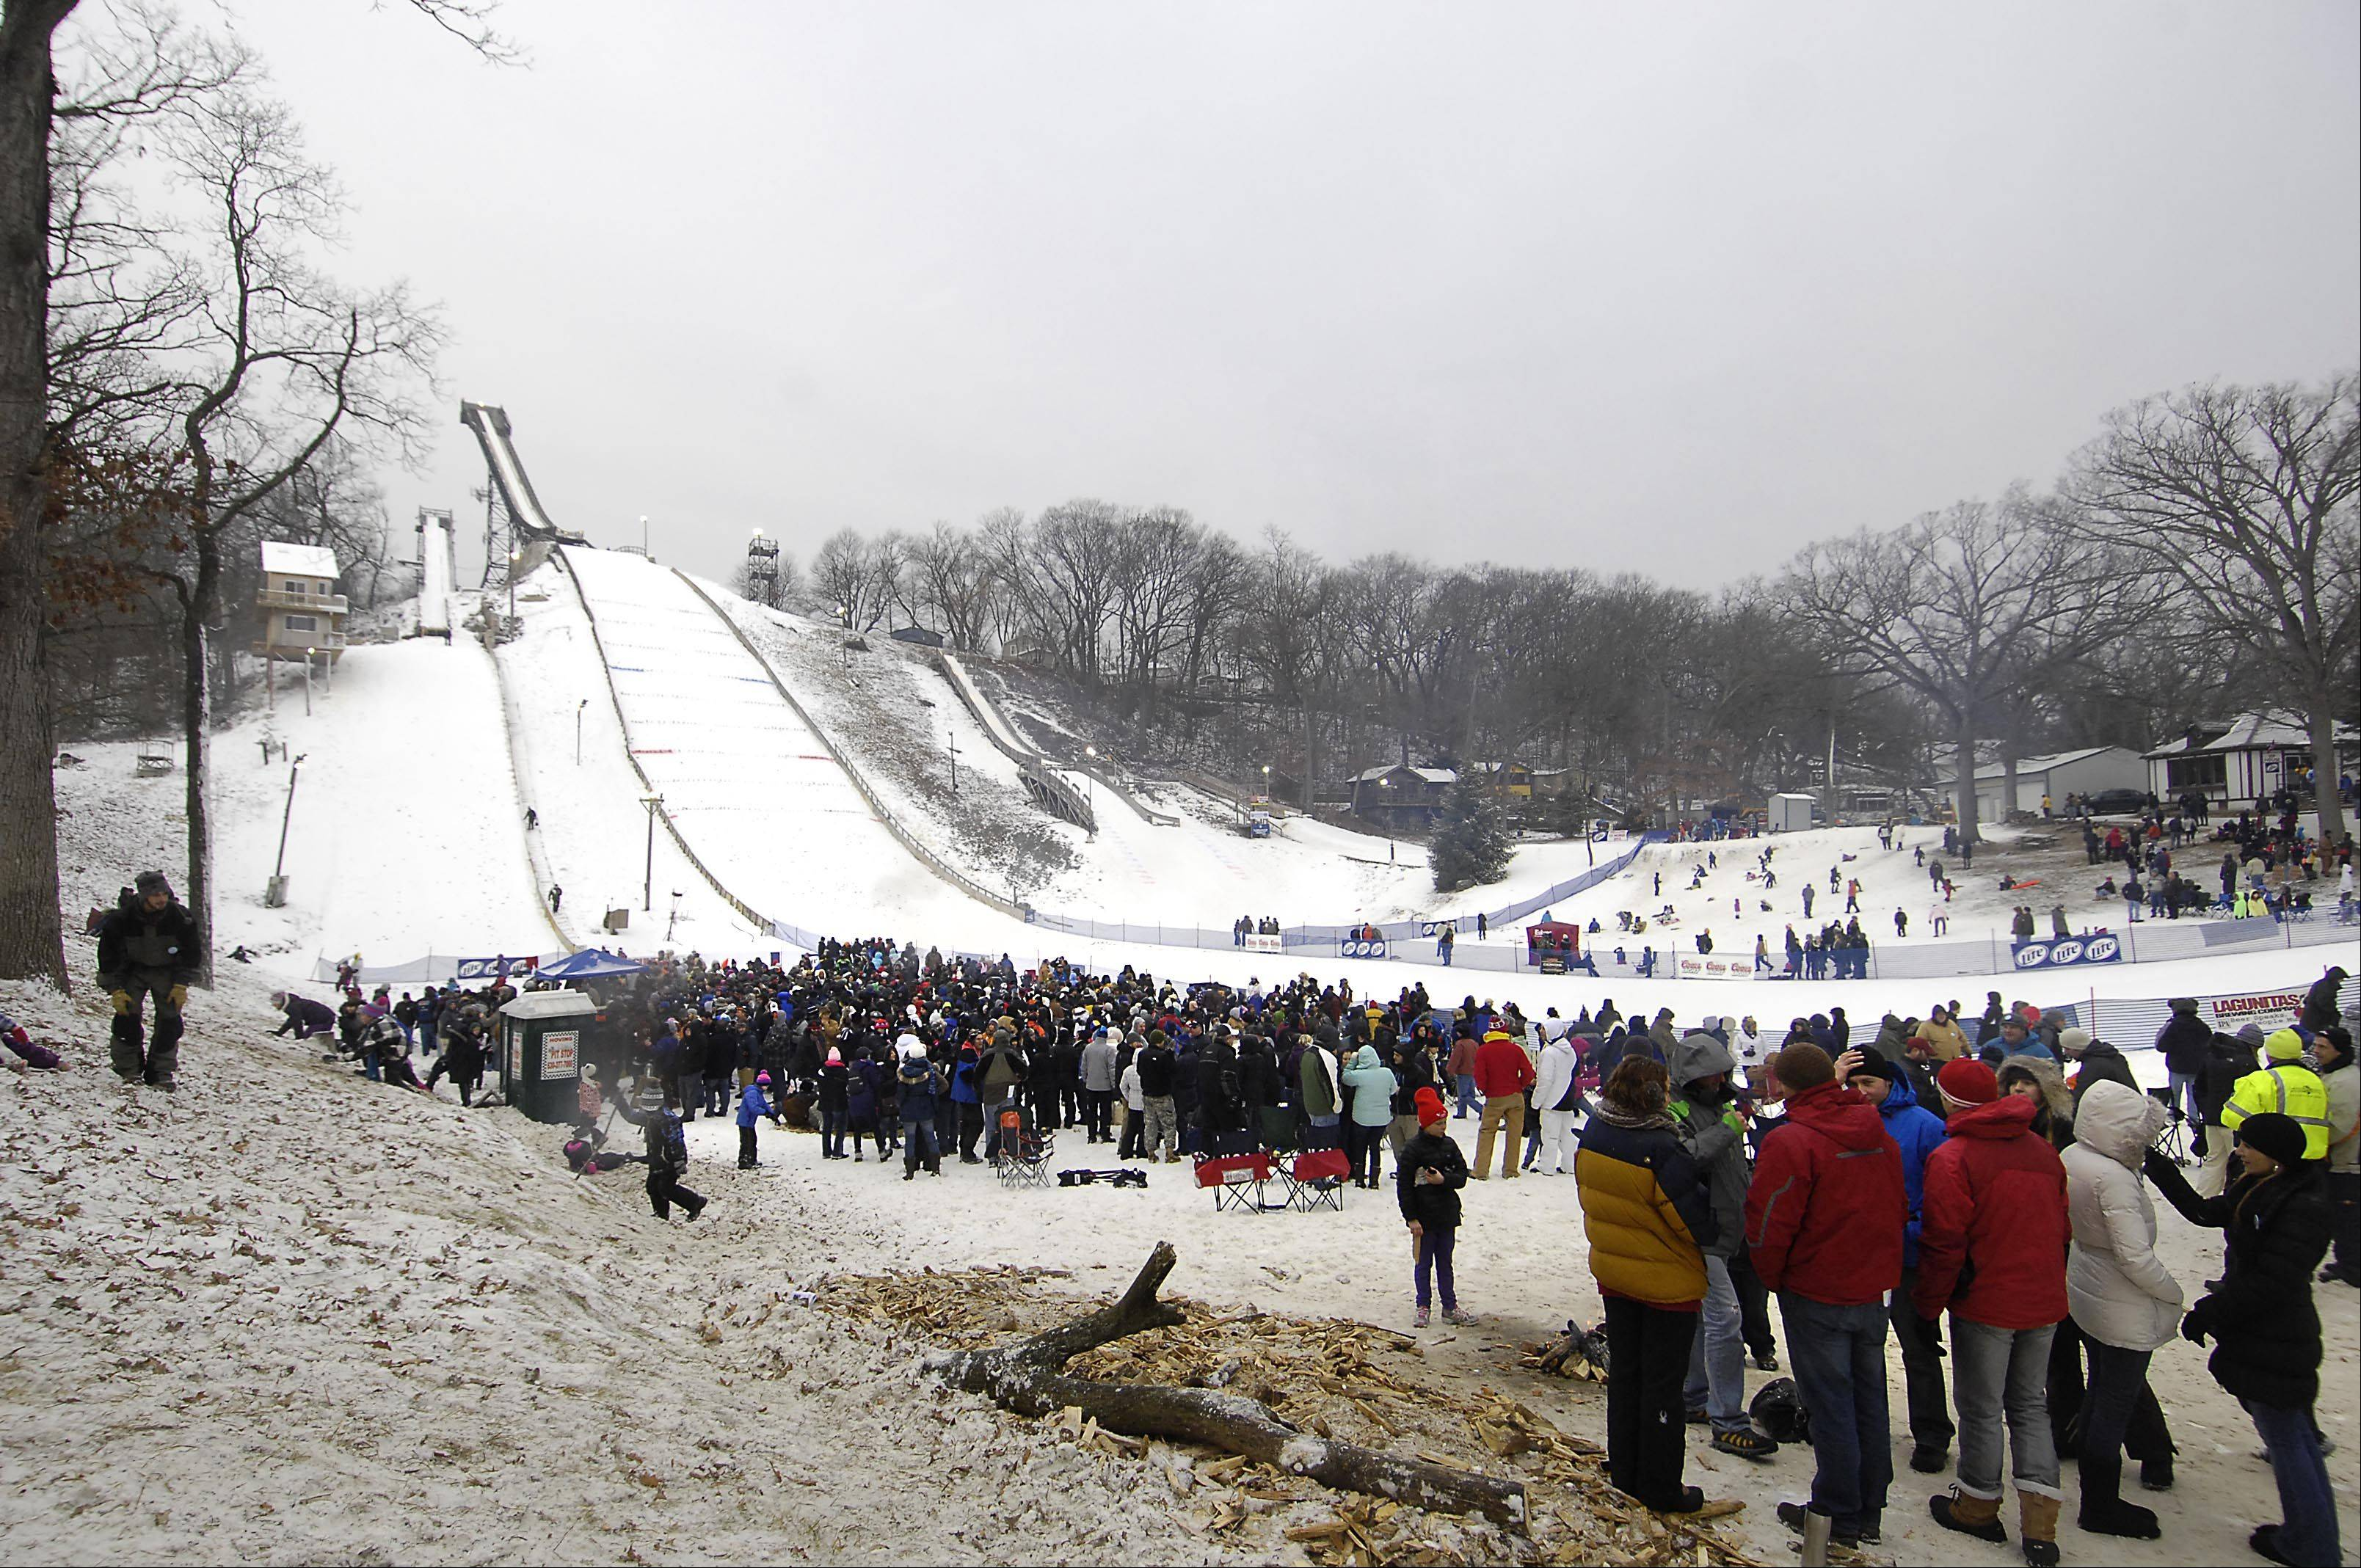 The bowl at the bottom of the hill stayed packed with spectators Sunday at the 108th Annual International Ski Jumping Tournament at Norge Ski Club in Fox River Grove.